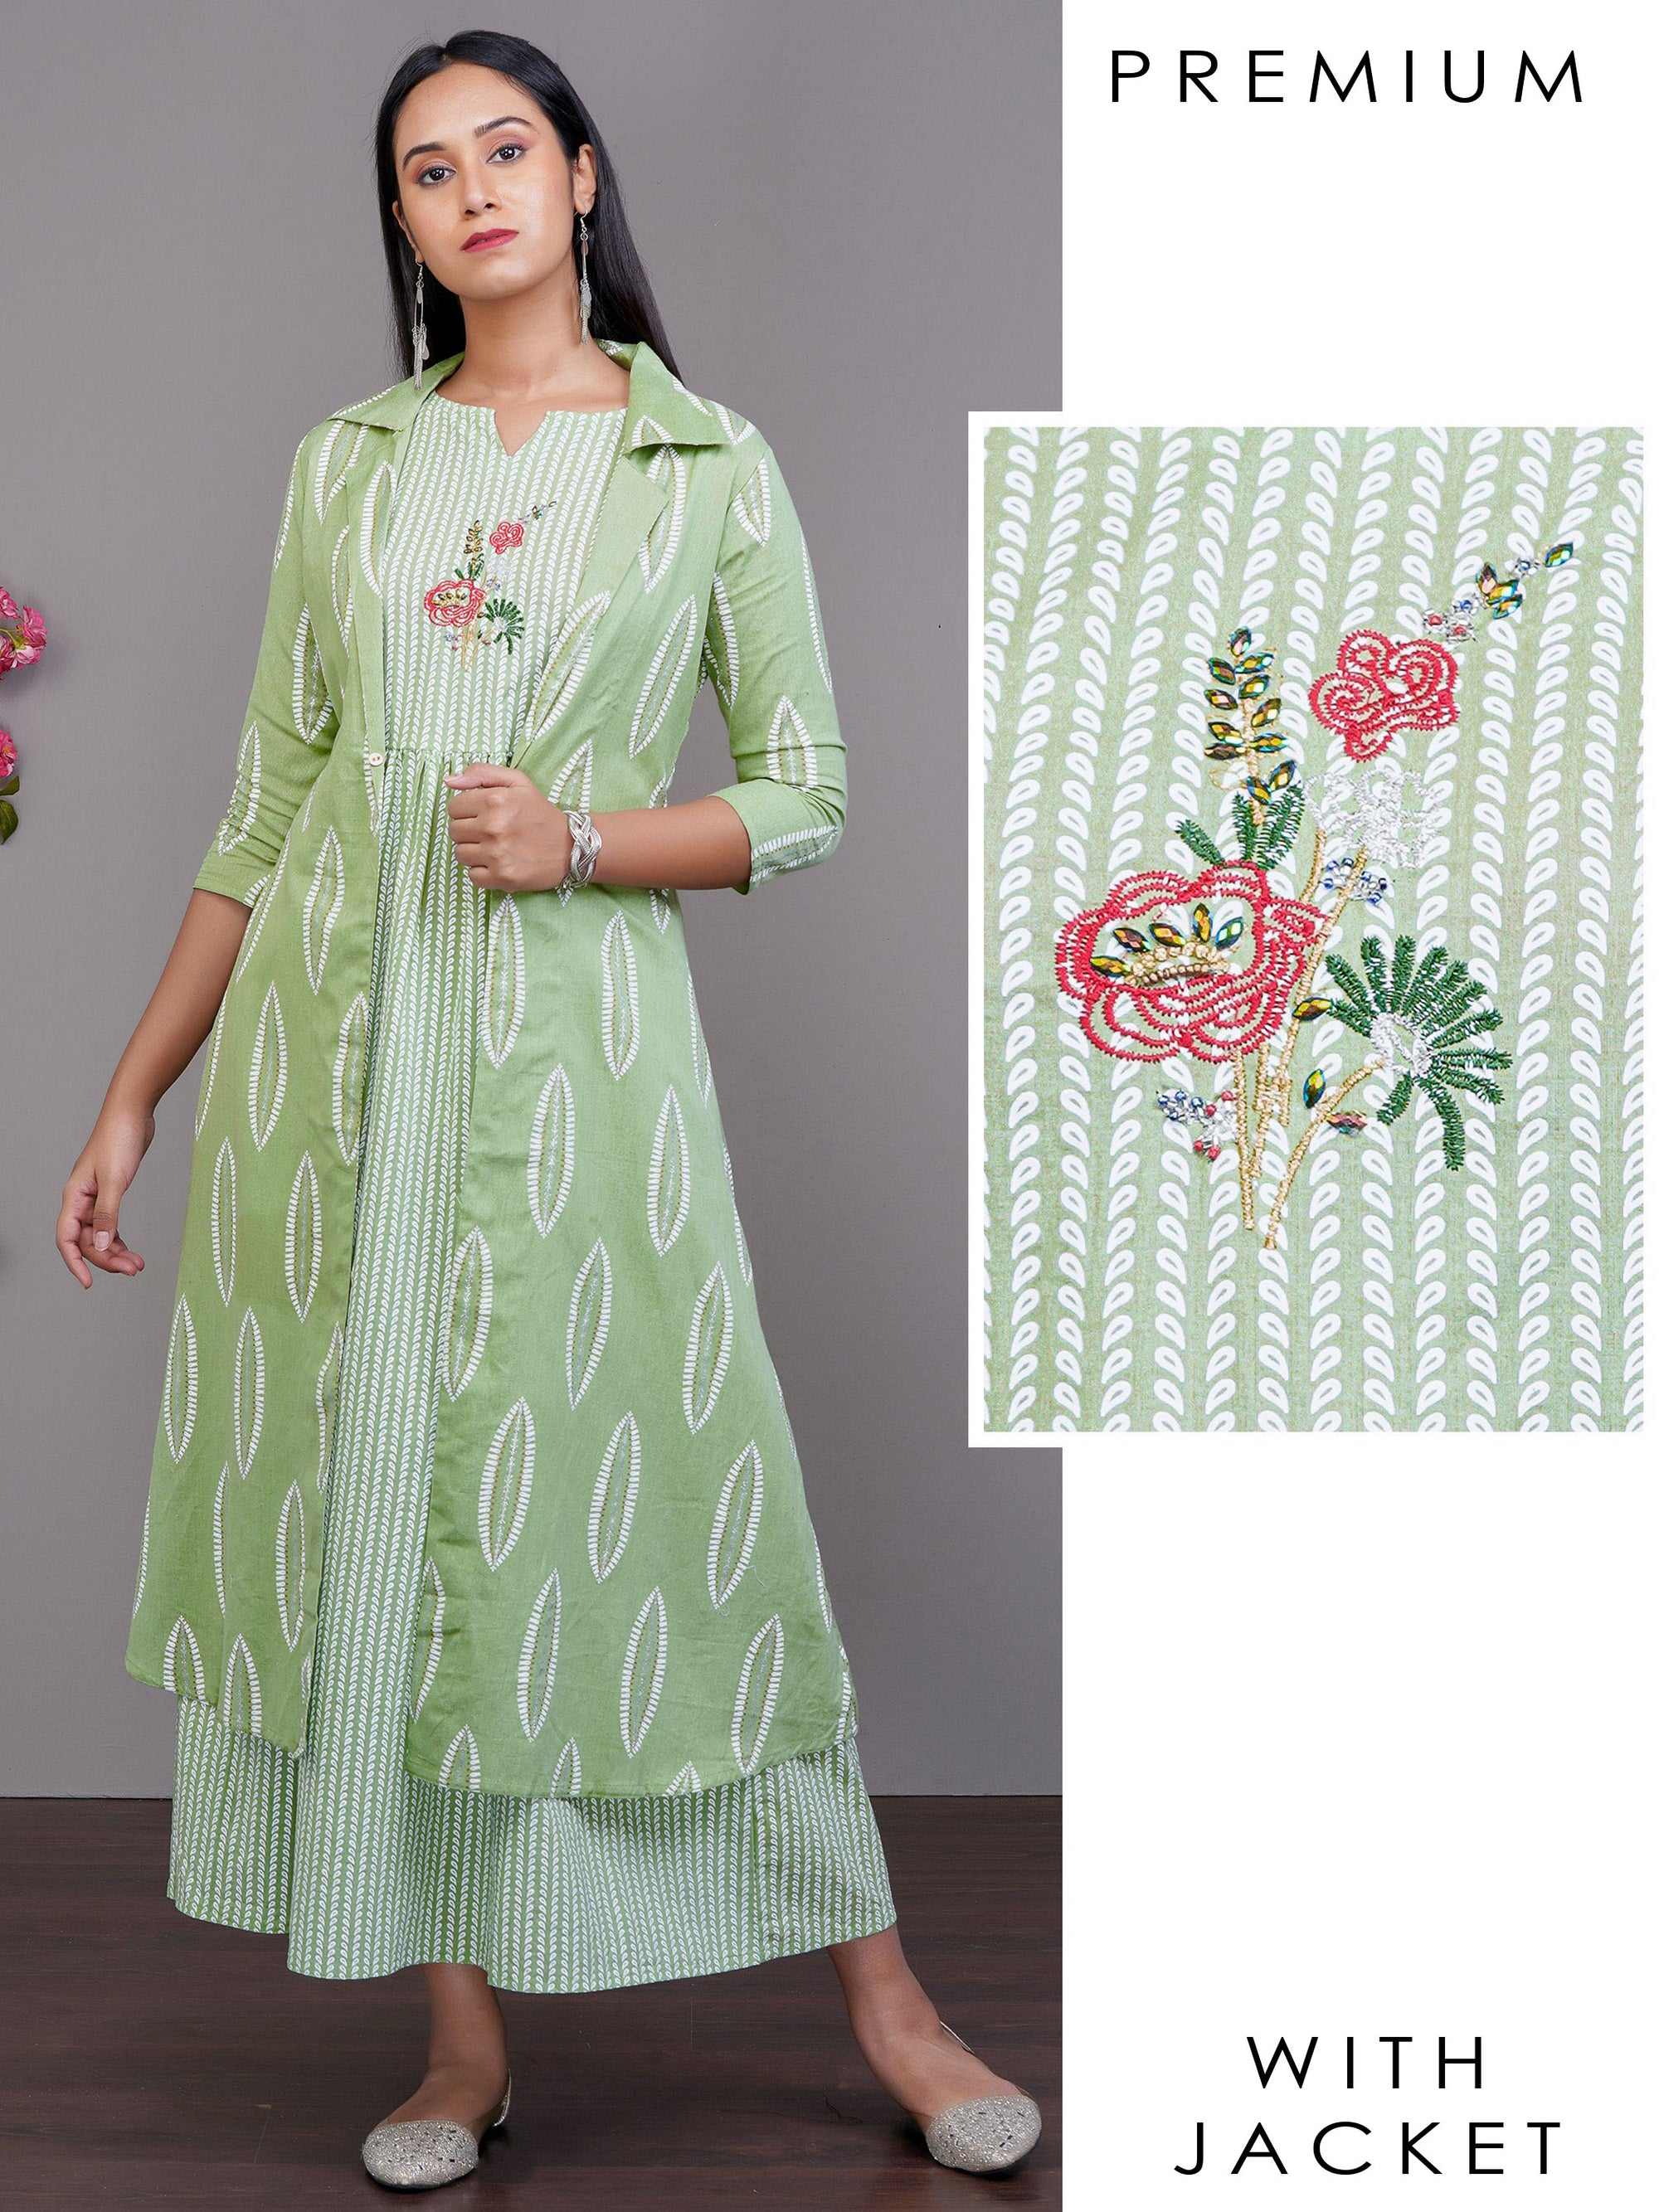 Minimal Printed Embroidered Maxi with Pinnate Leaf Printed Jacket – Mint Green